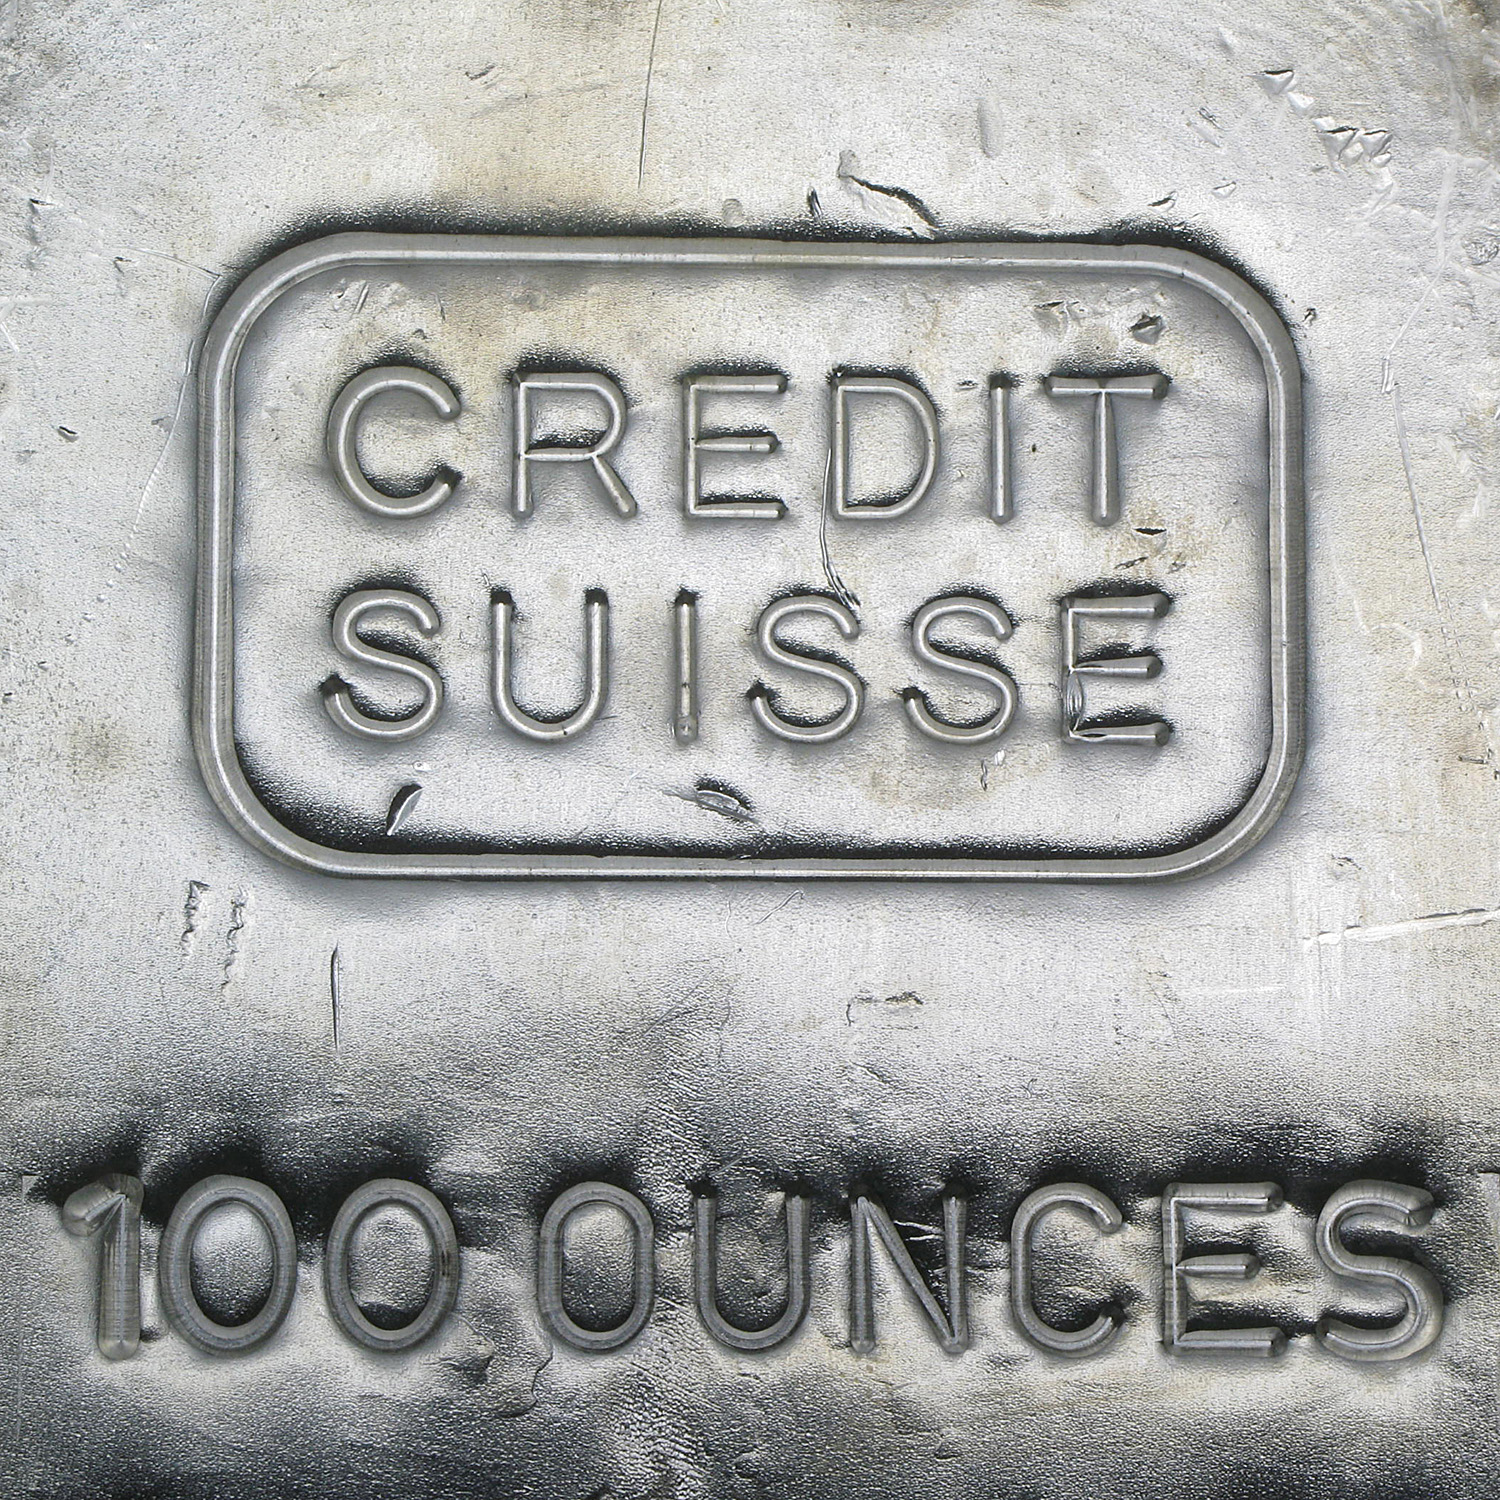 100 oz Silver Bar - Credit Suisse